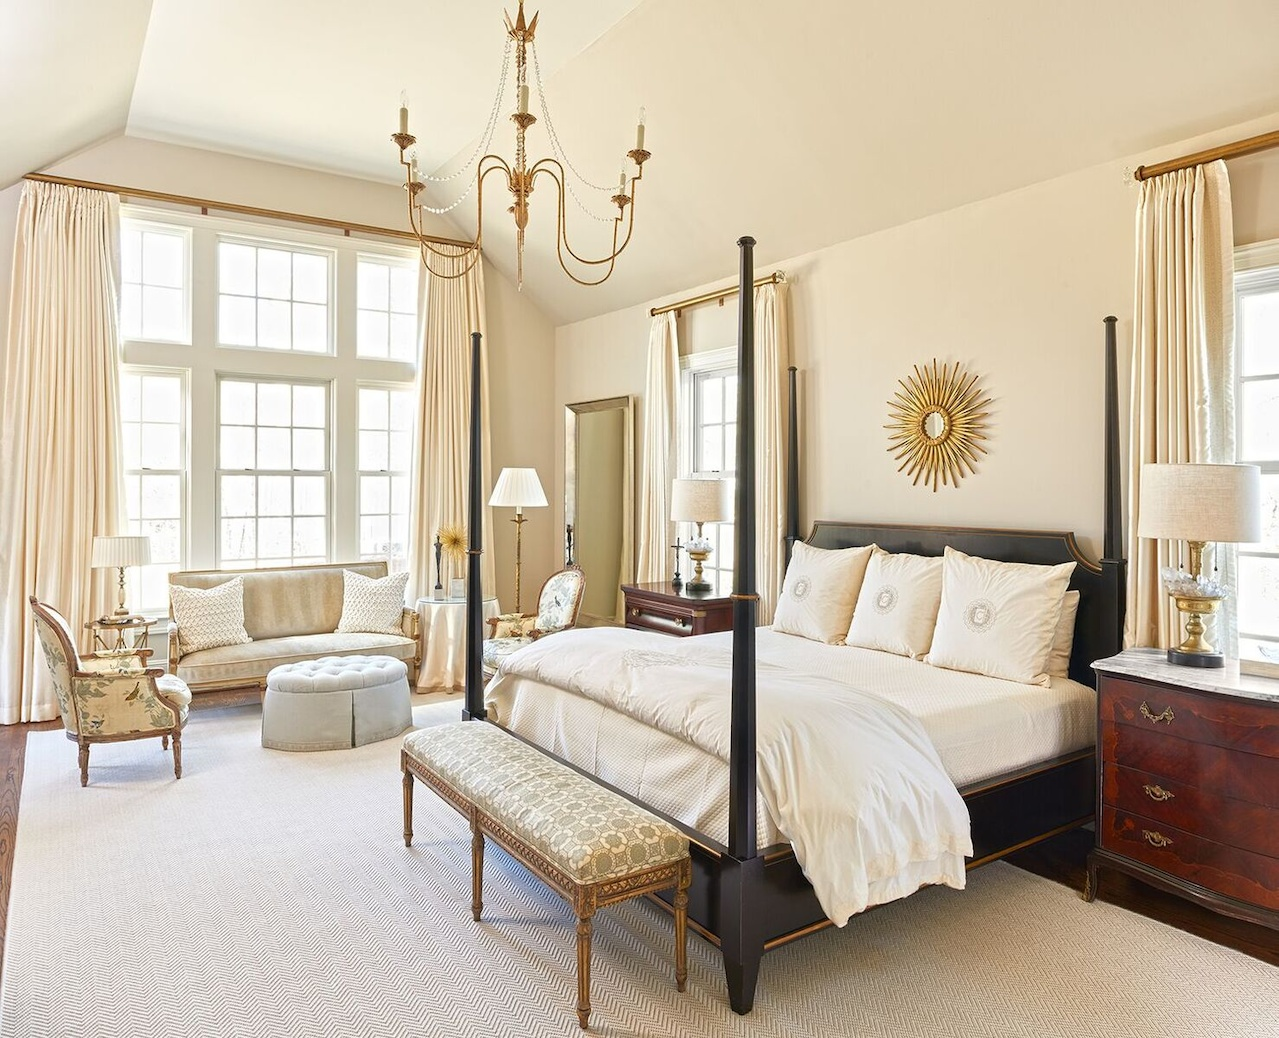 Antiques fill the master bedroom, reminiscent of an upscale hotel suite. The designer painted walls a tinted version of Benjamin Moore's Revere Pewter.